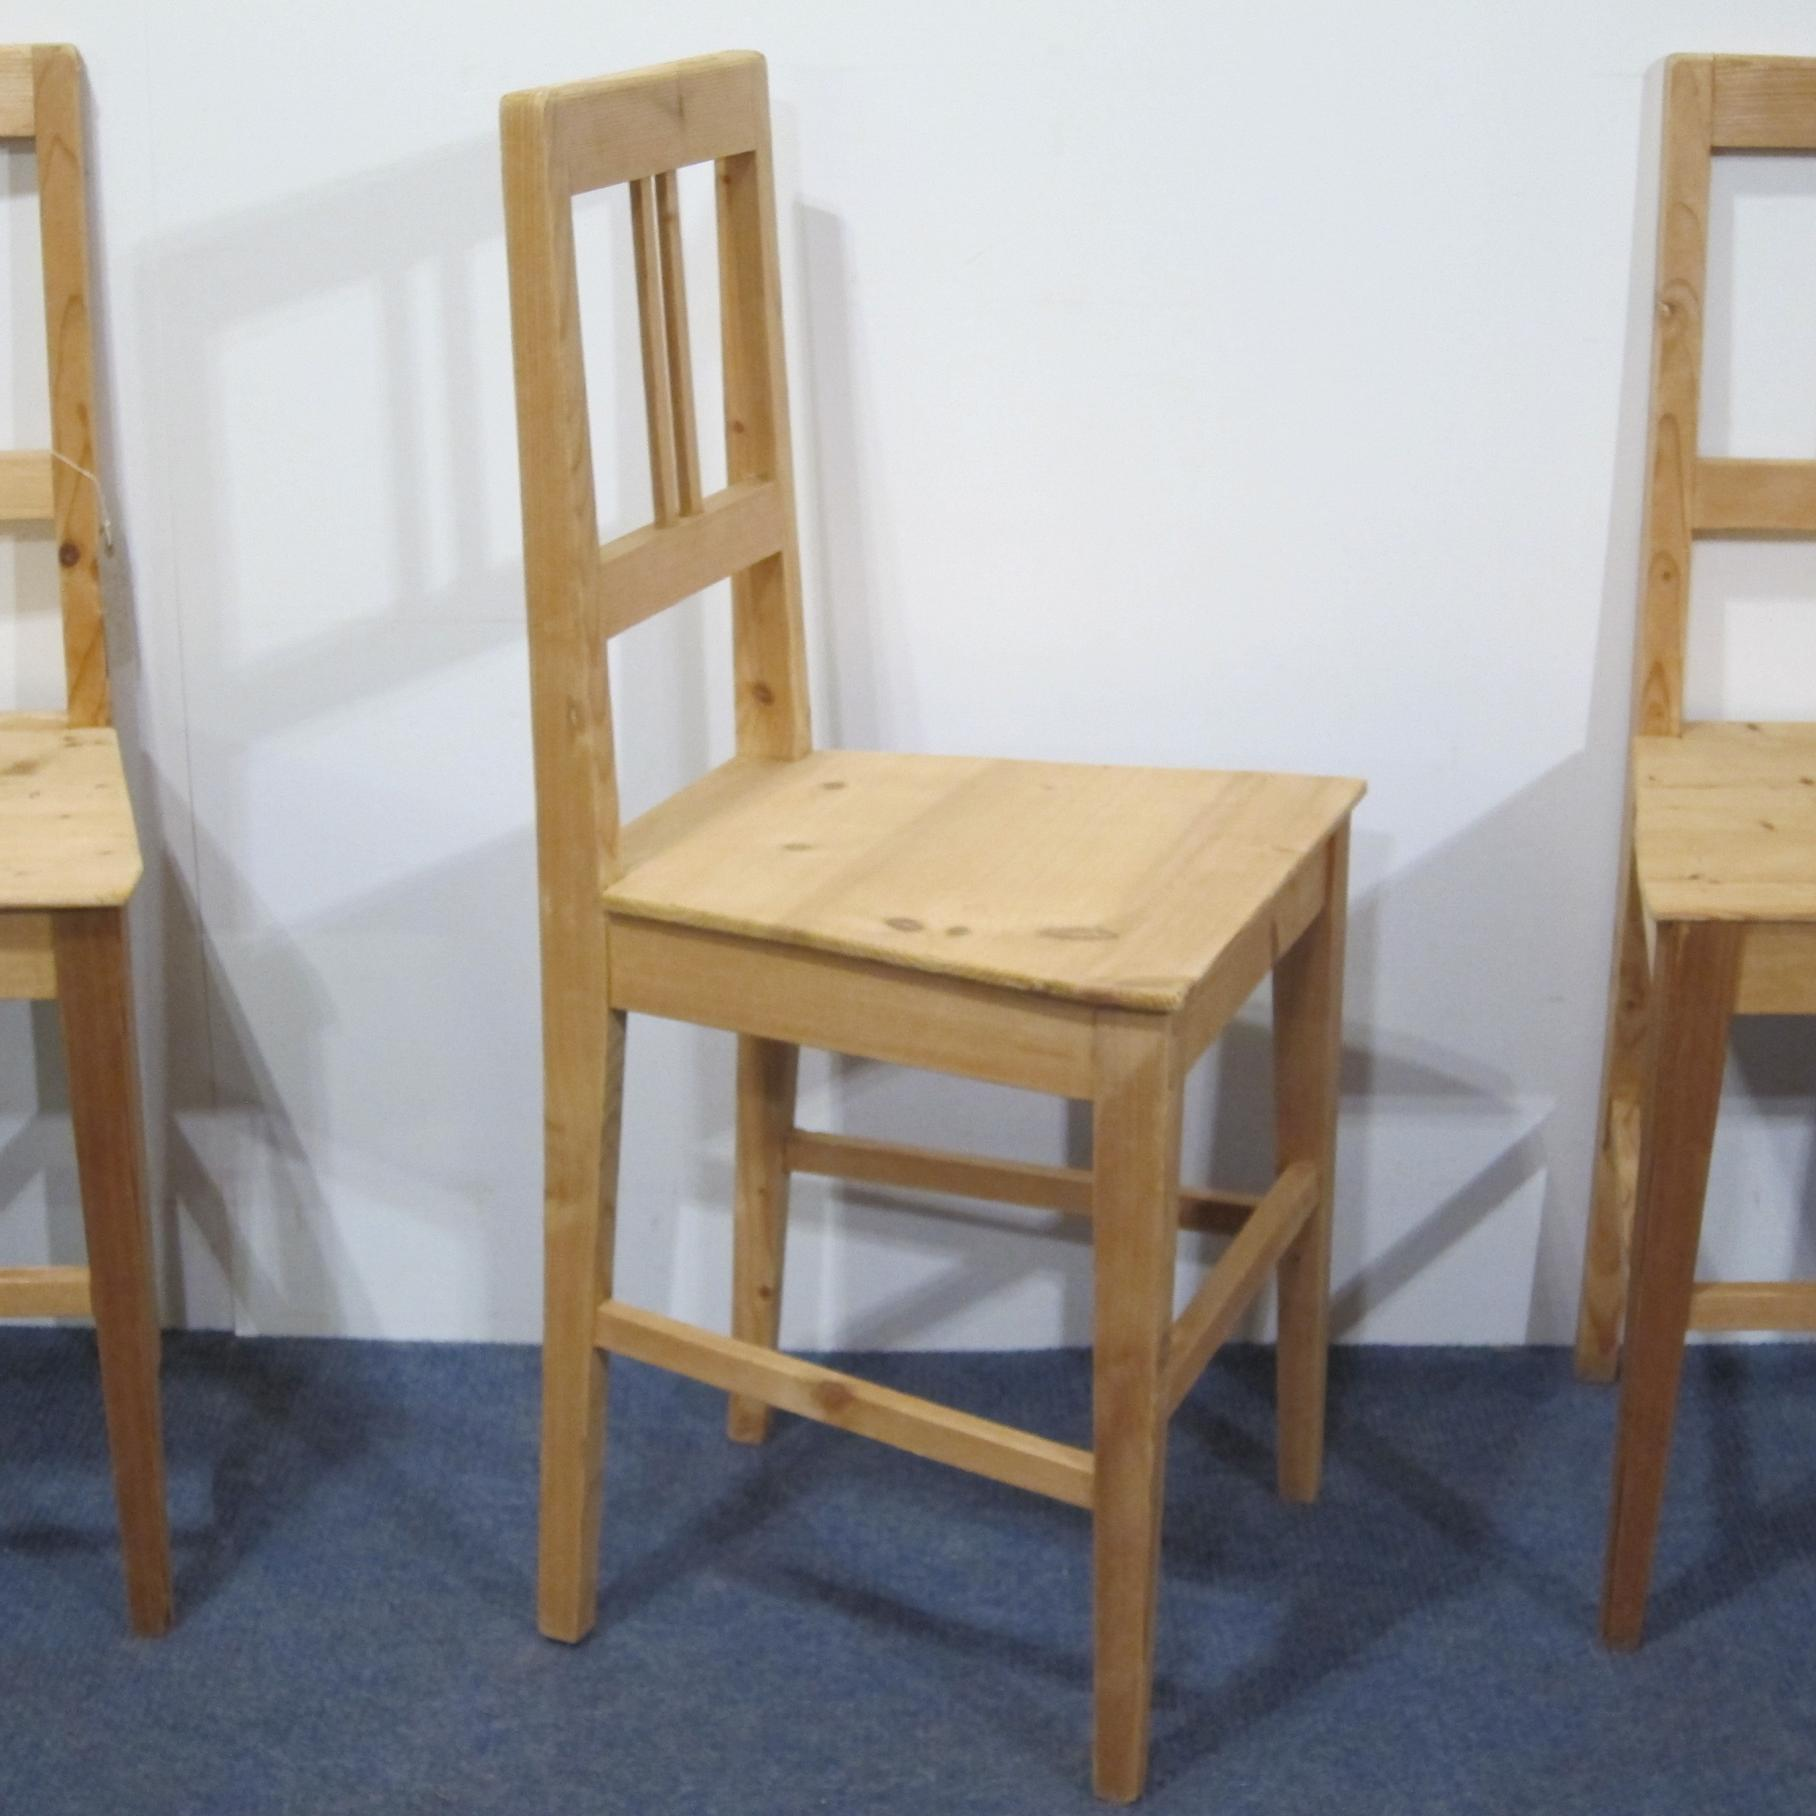 Farmhouse Kitchen Dining: Antique Farmhouse Kitchen Dining Room Chairs C1920s